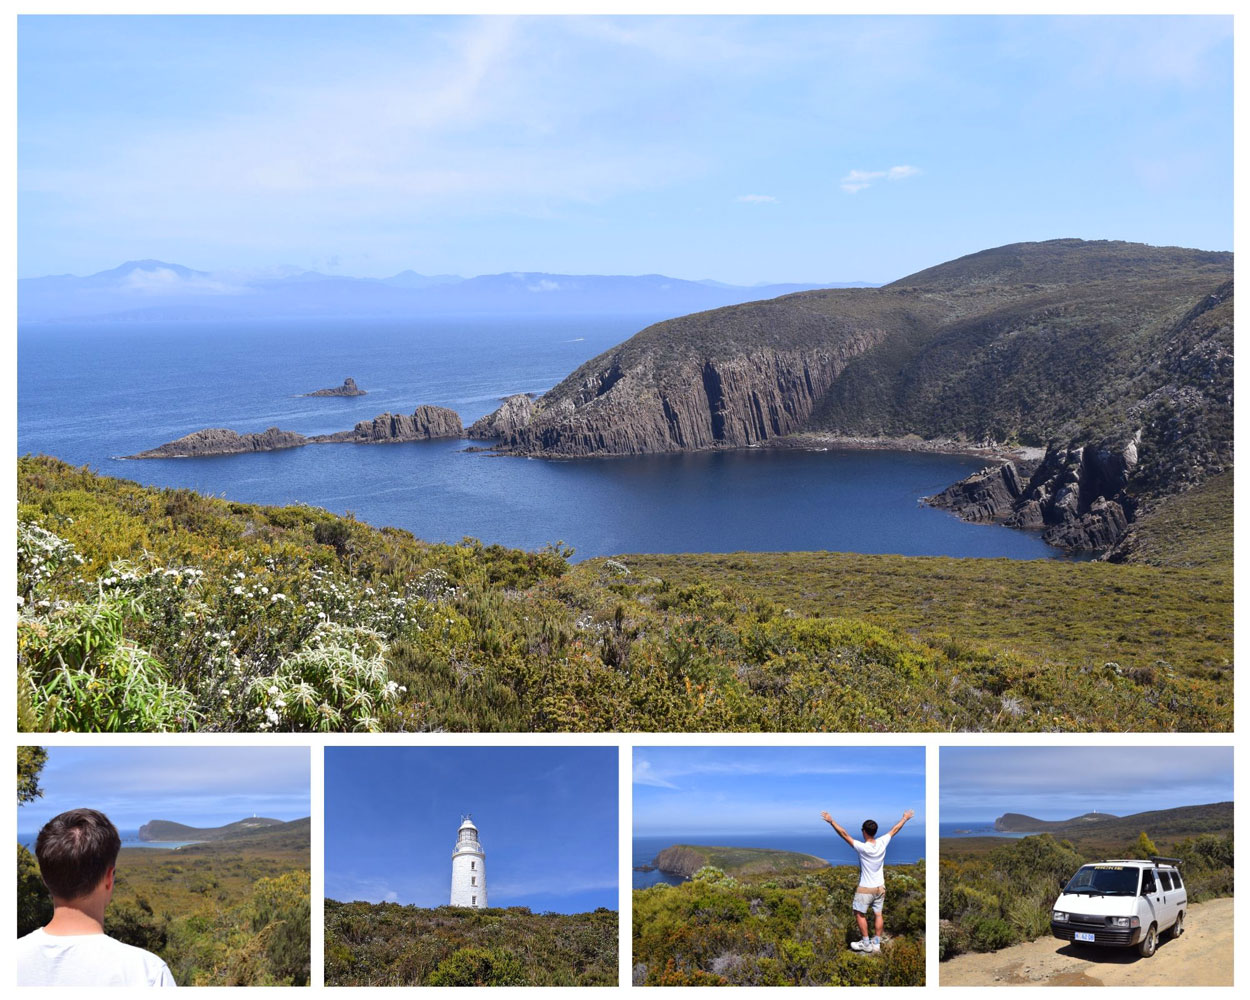 Paysages sauvages au phare de Cape Bruny - Cape Bruny Lighthouse station